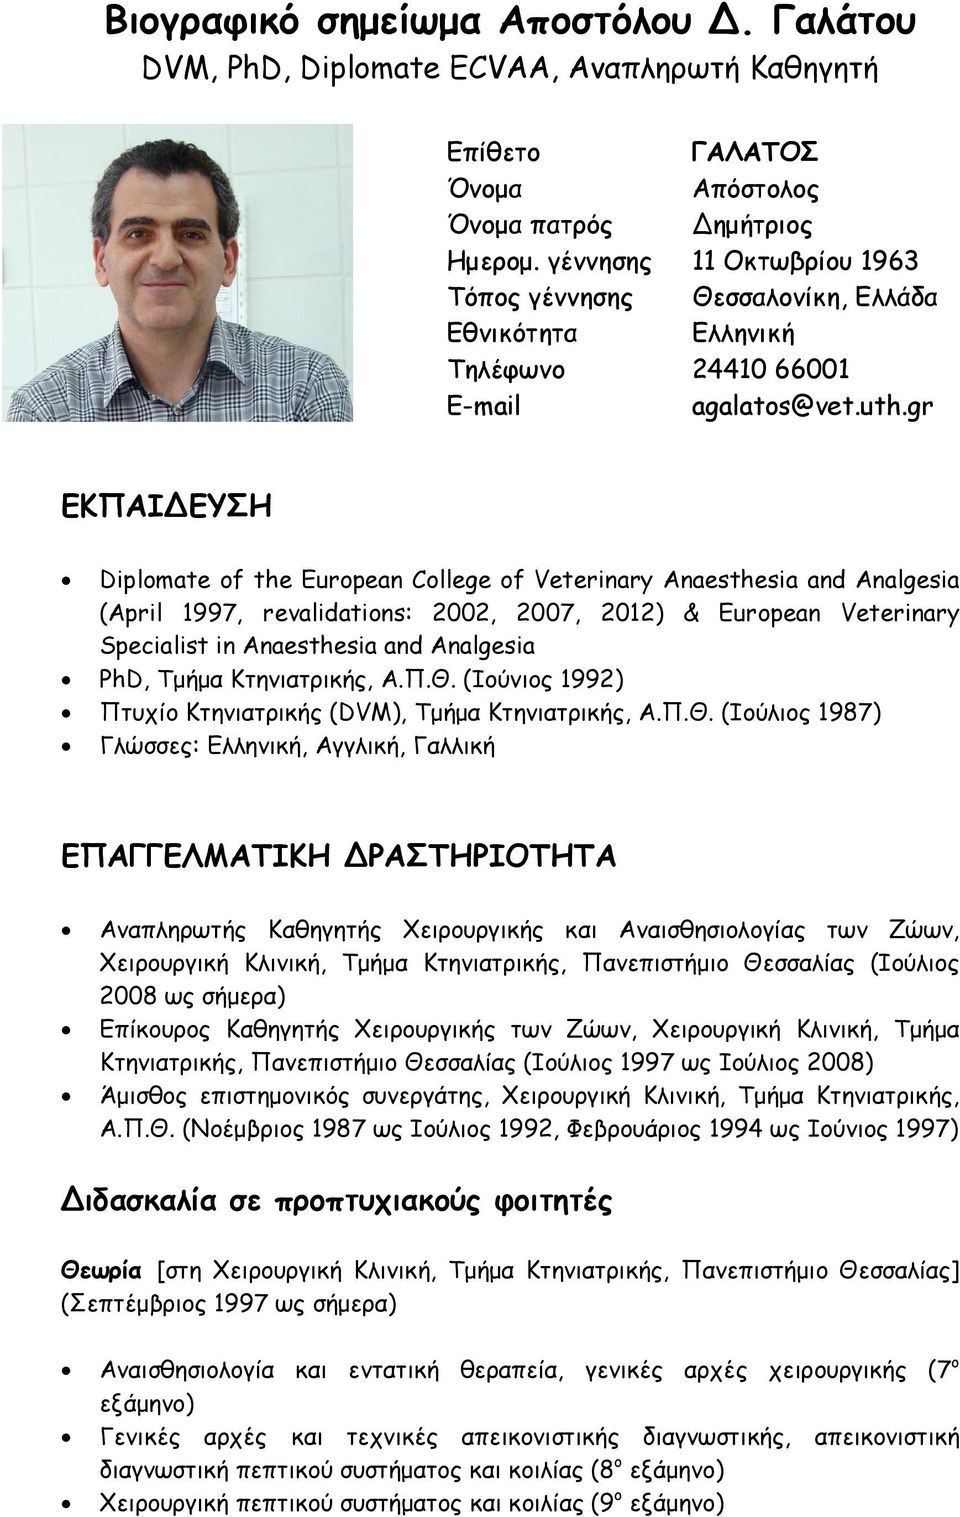 gr ΕΚΠΑΙΔΕΥΣΗ Diplomate of the European College of Veterinary Anaesthesia and Analgesia (April 1997, revalidations: 2002, 2007, 2012) & European Veterinary Specialist in Anaesthesia and Analgesia